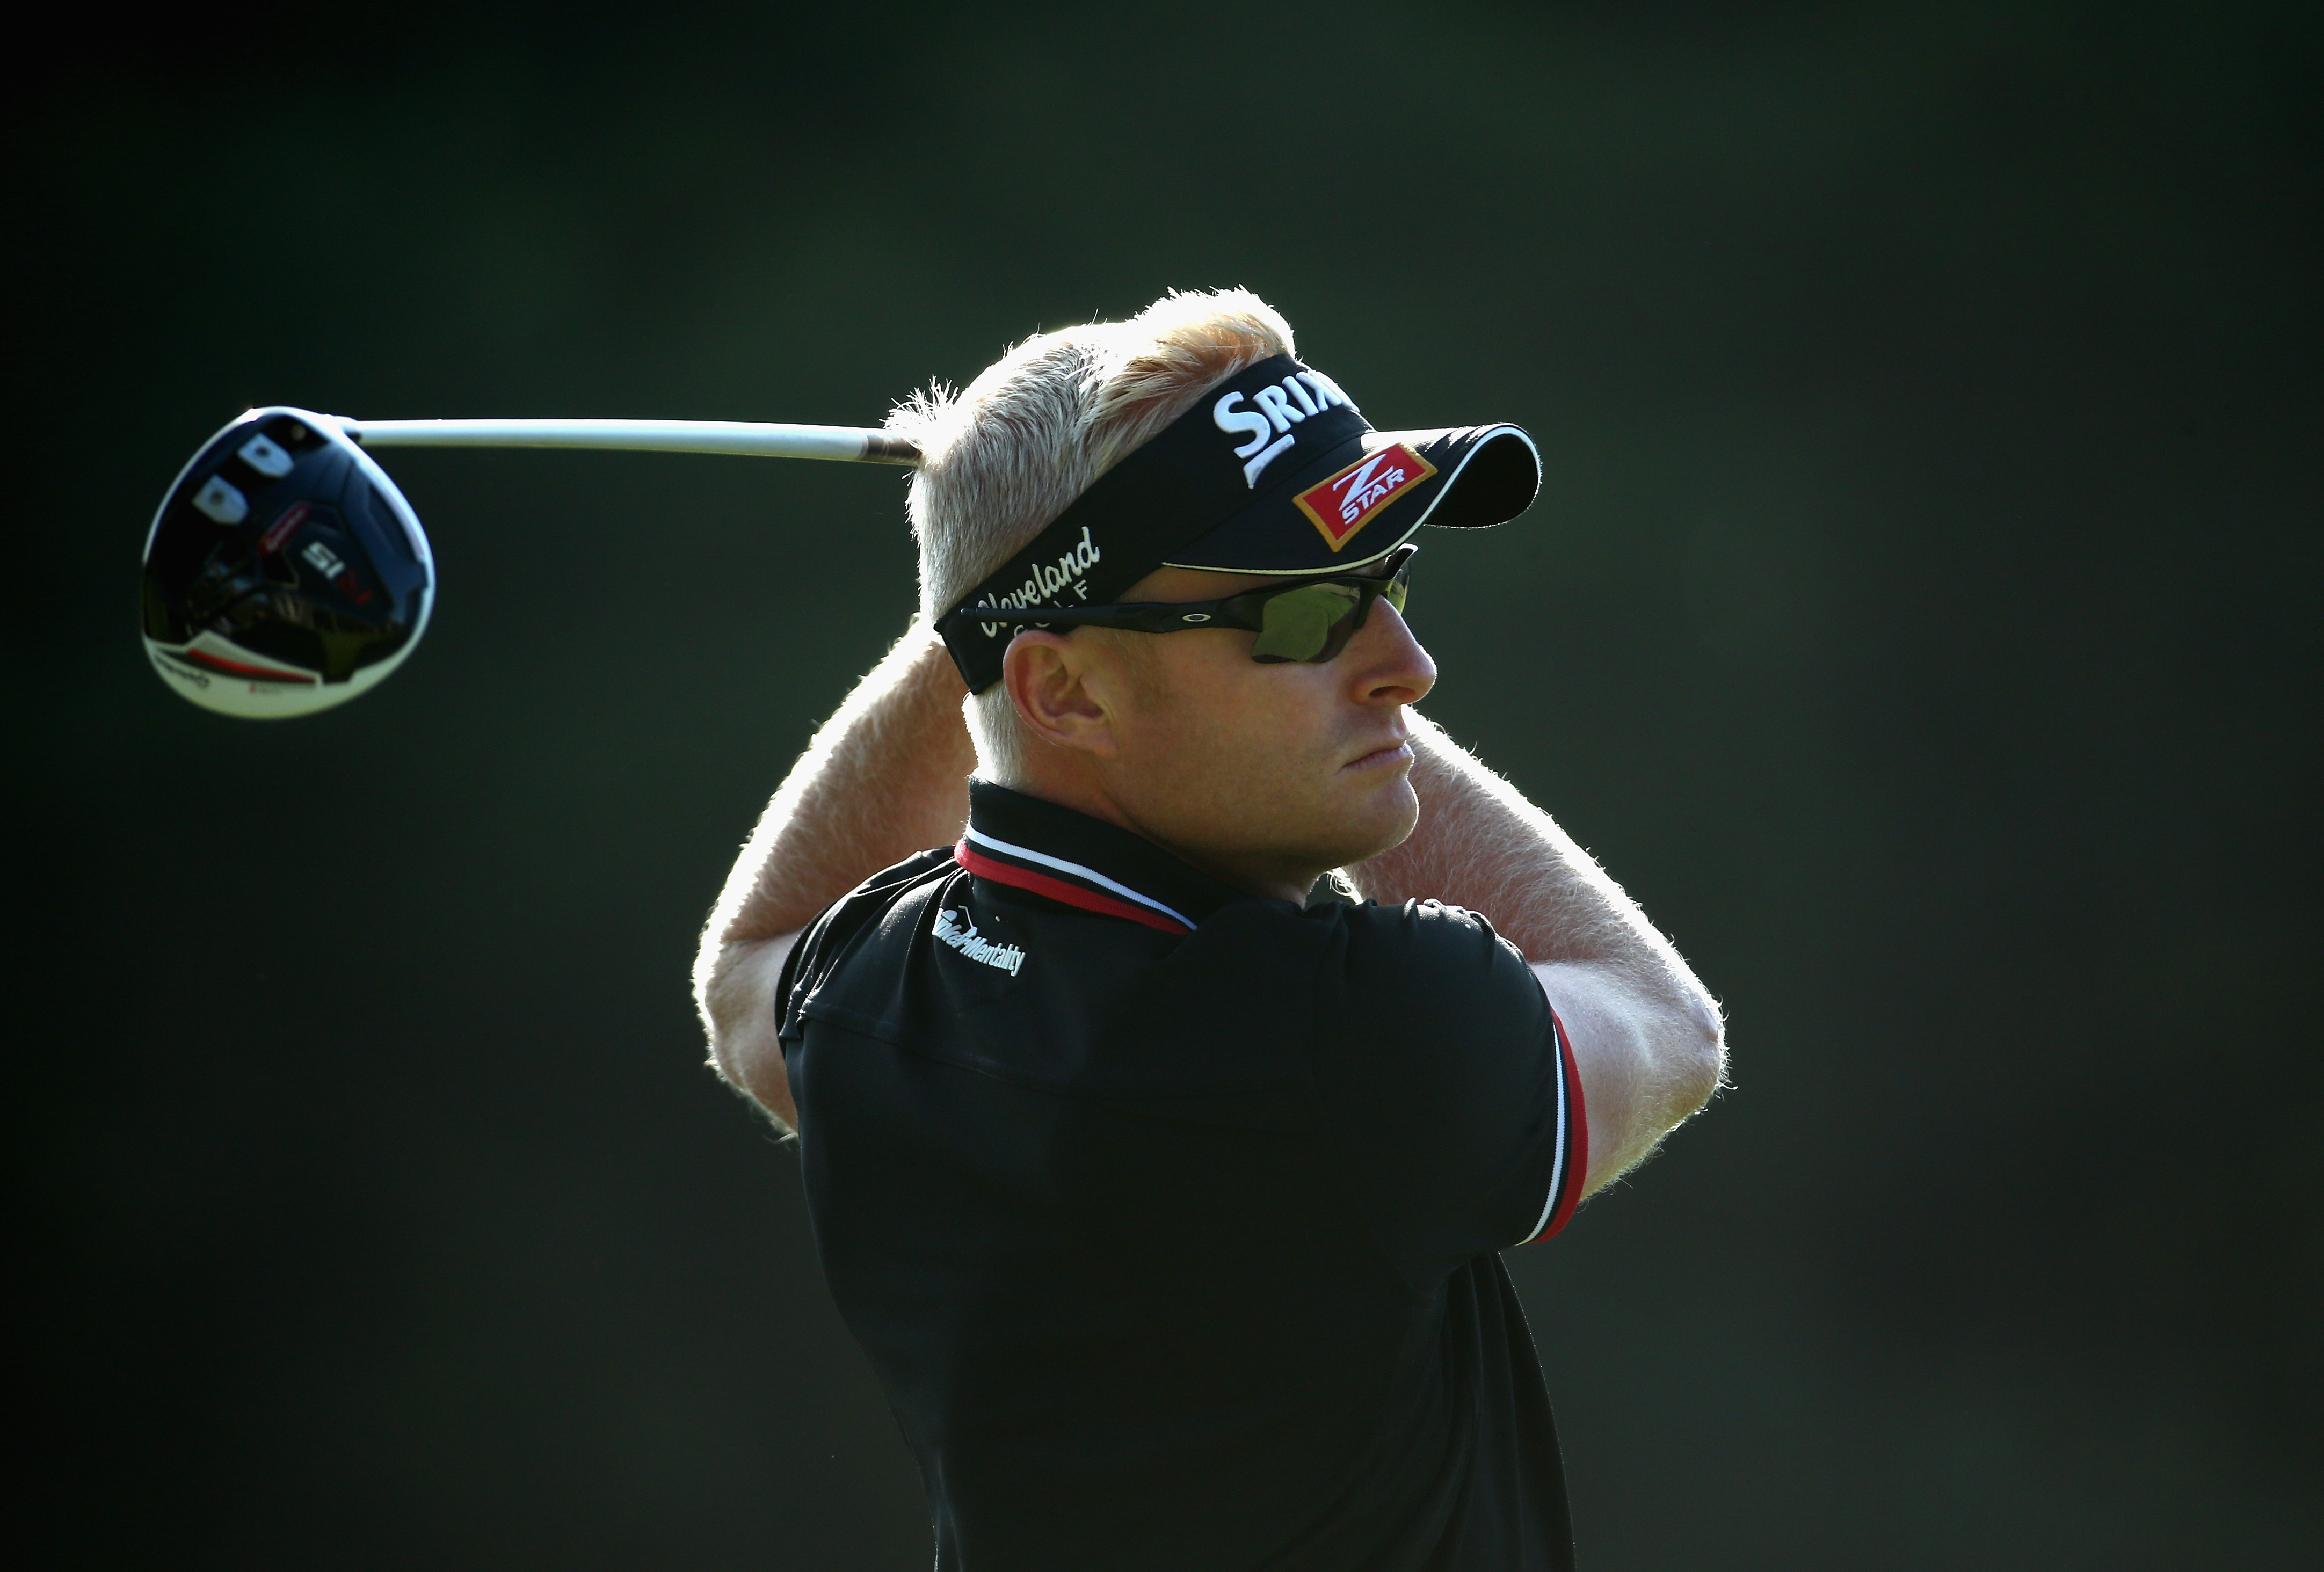 Dyson has played the Race to Dubai since its inception in 2009 (Photo: Getty Images)